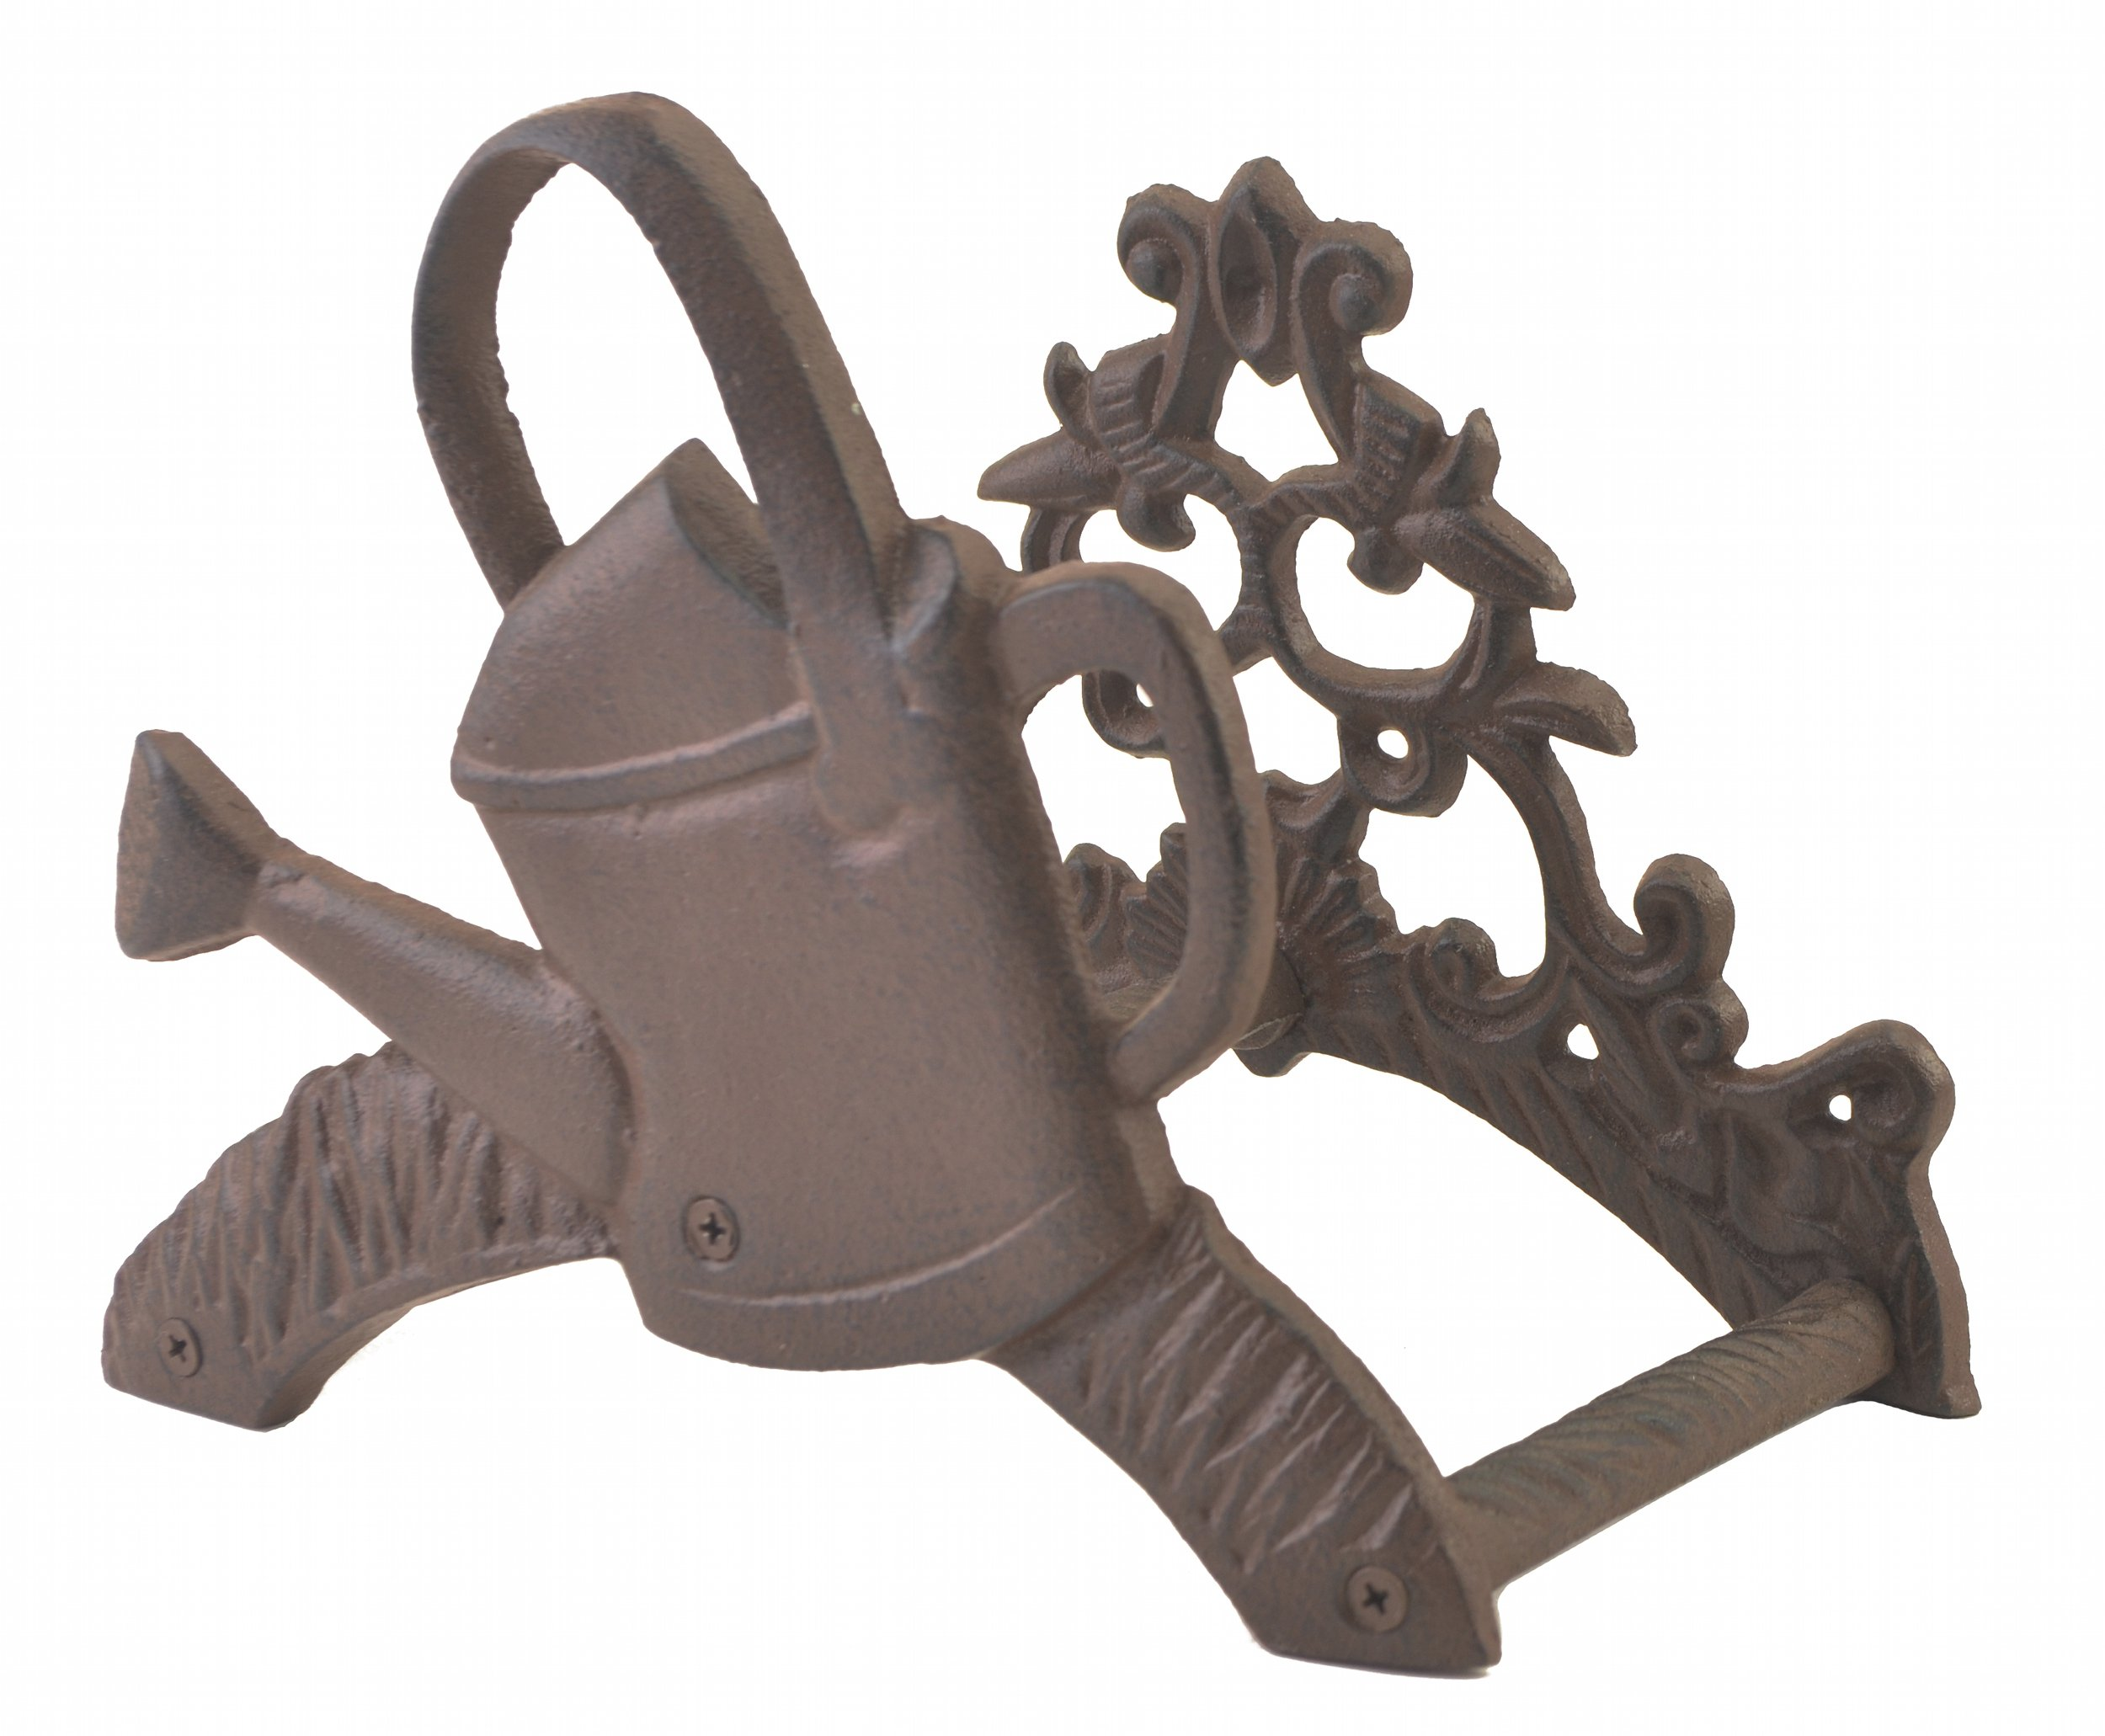 Cast Iron Garden Hose Holder Watering Can Design Hanger Reel 7.625'' Tall